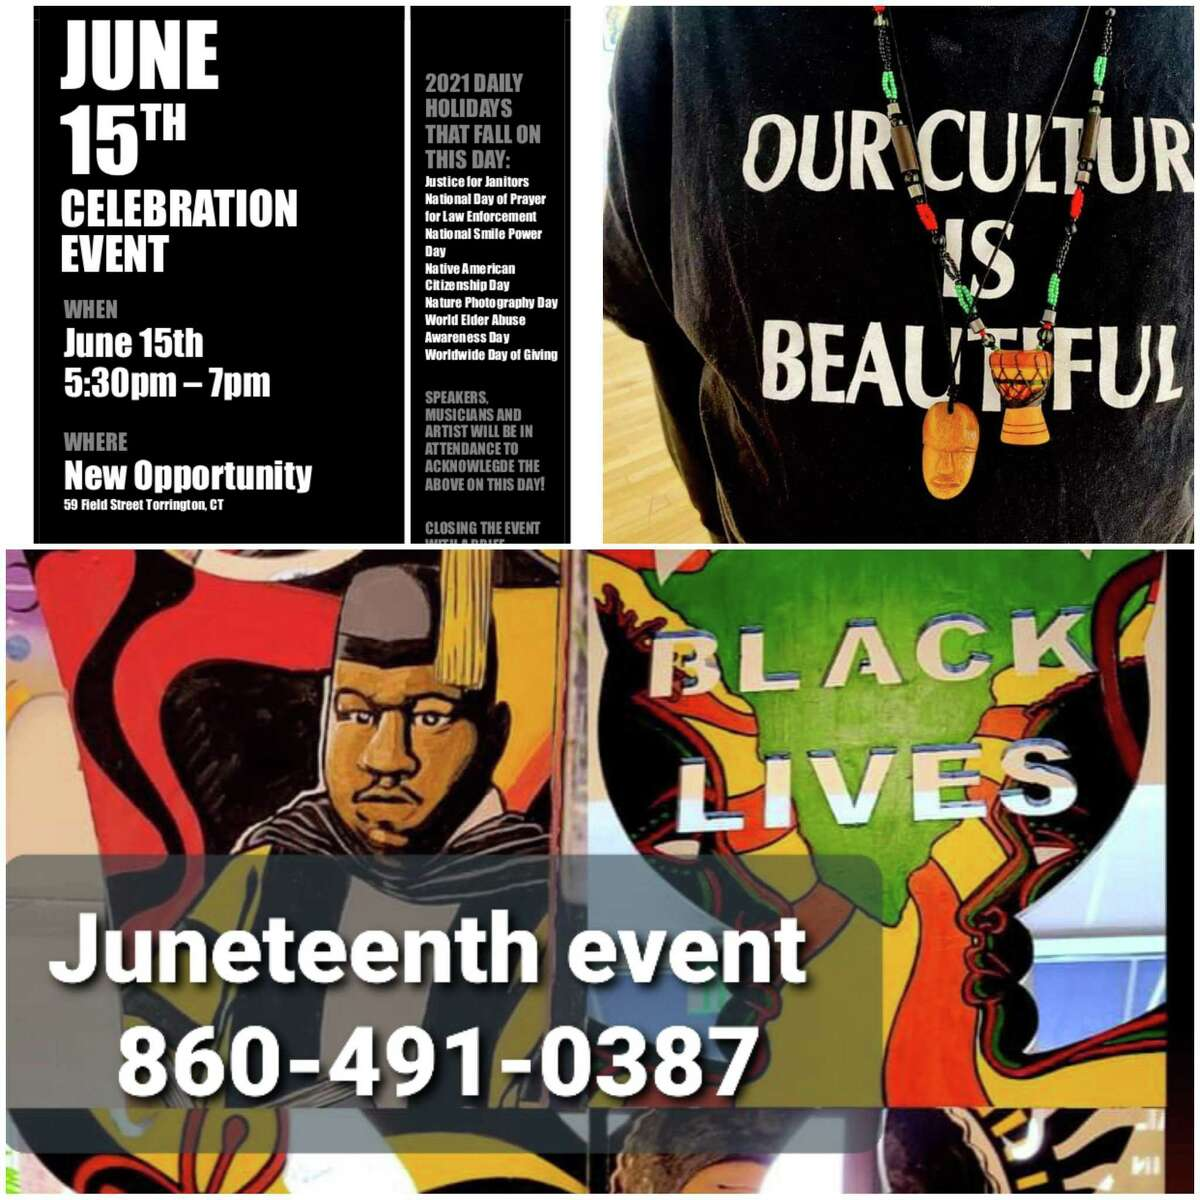 Residents and members of a cultural group, Our Culture is Beautiful, are holding events June 15 in Torrington.